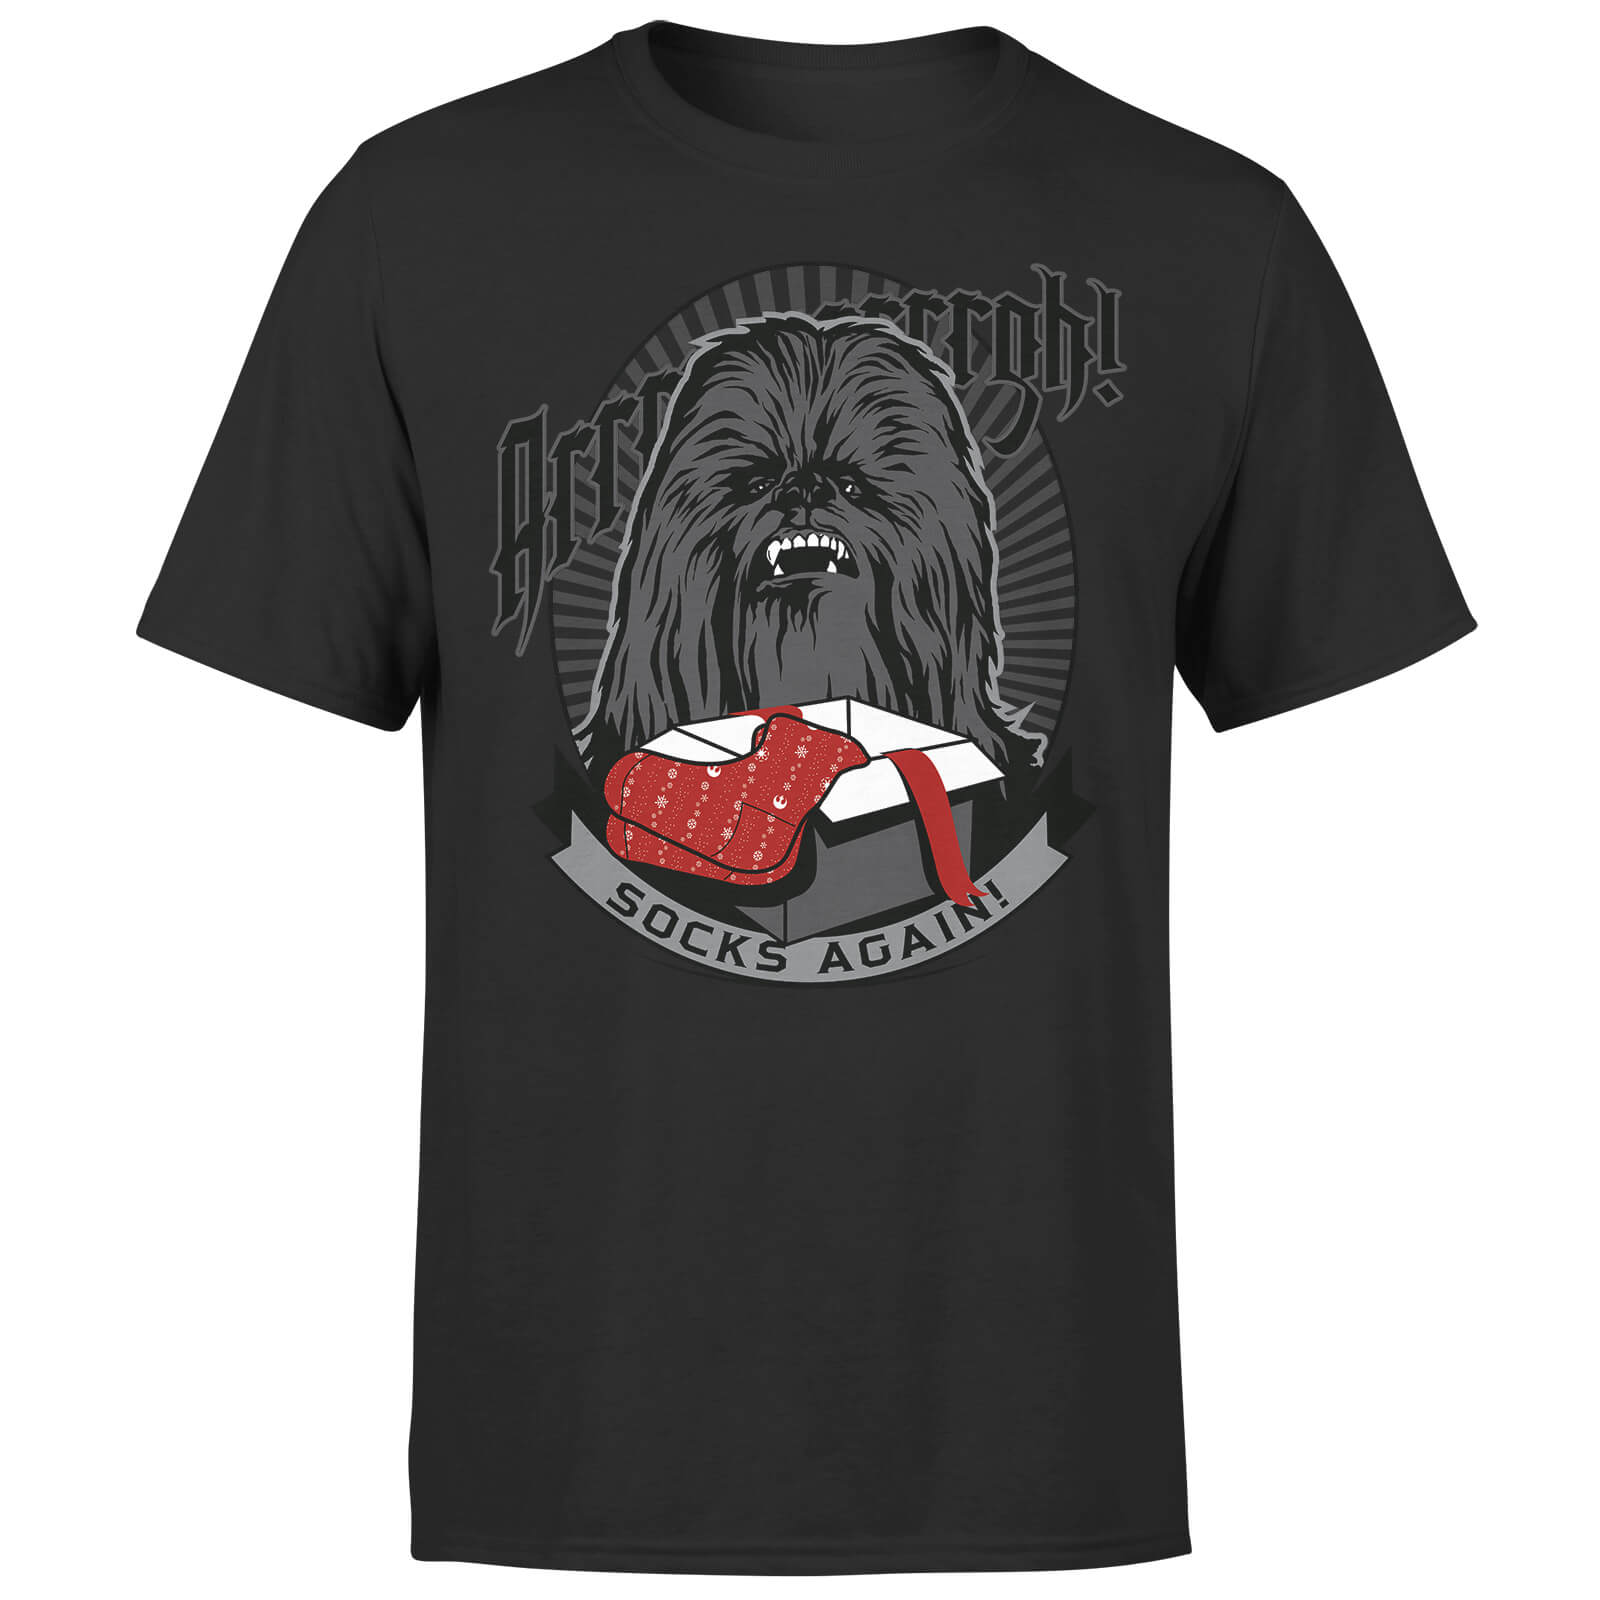 Star Wars Christmas Chewbacca Arrrugh Socks Again Black T-Shirt